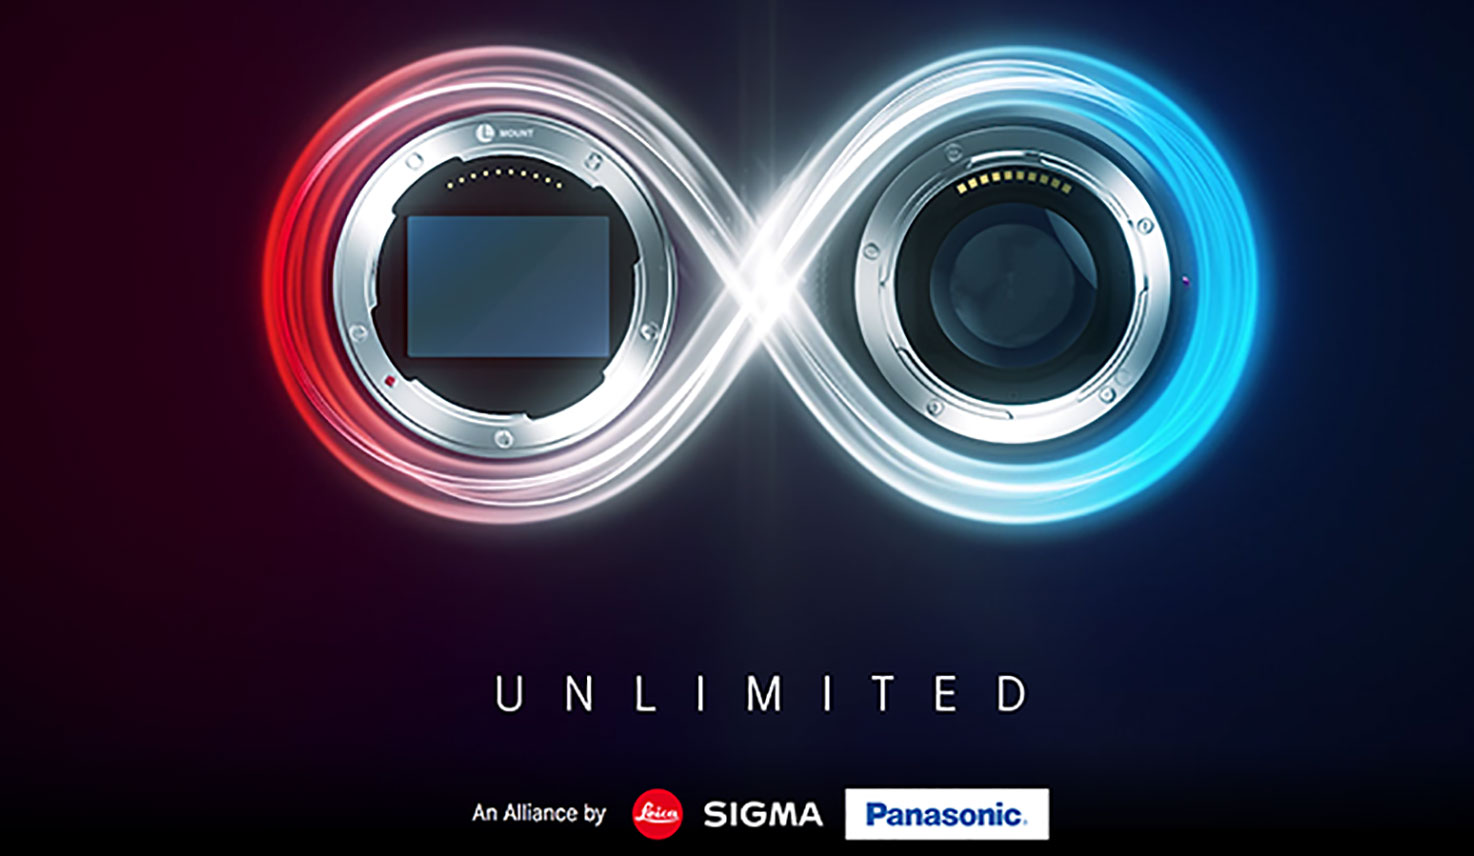 INTERVIEW: Sigma's involvement in the new L Mount Alliance with Panasonic and Leica